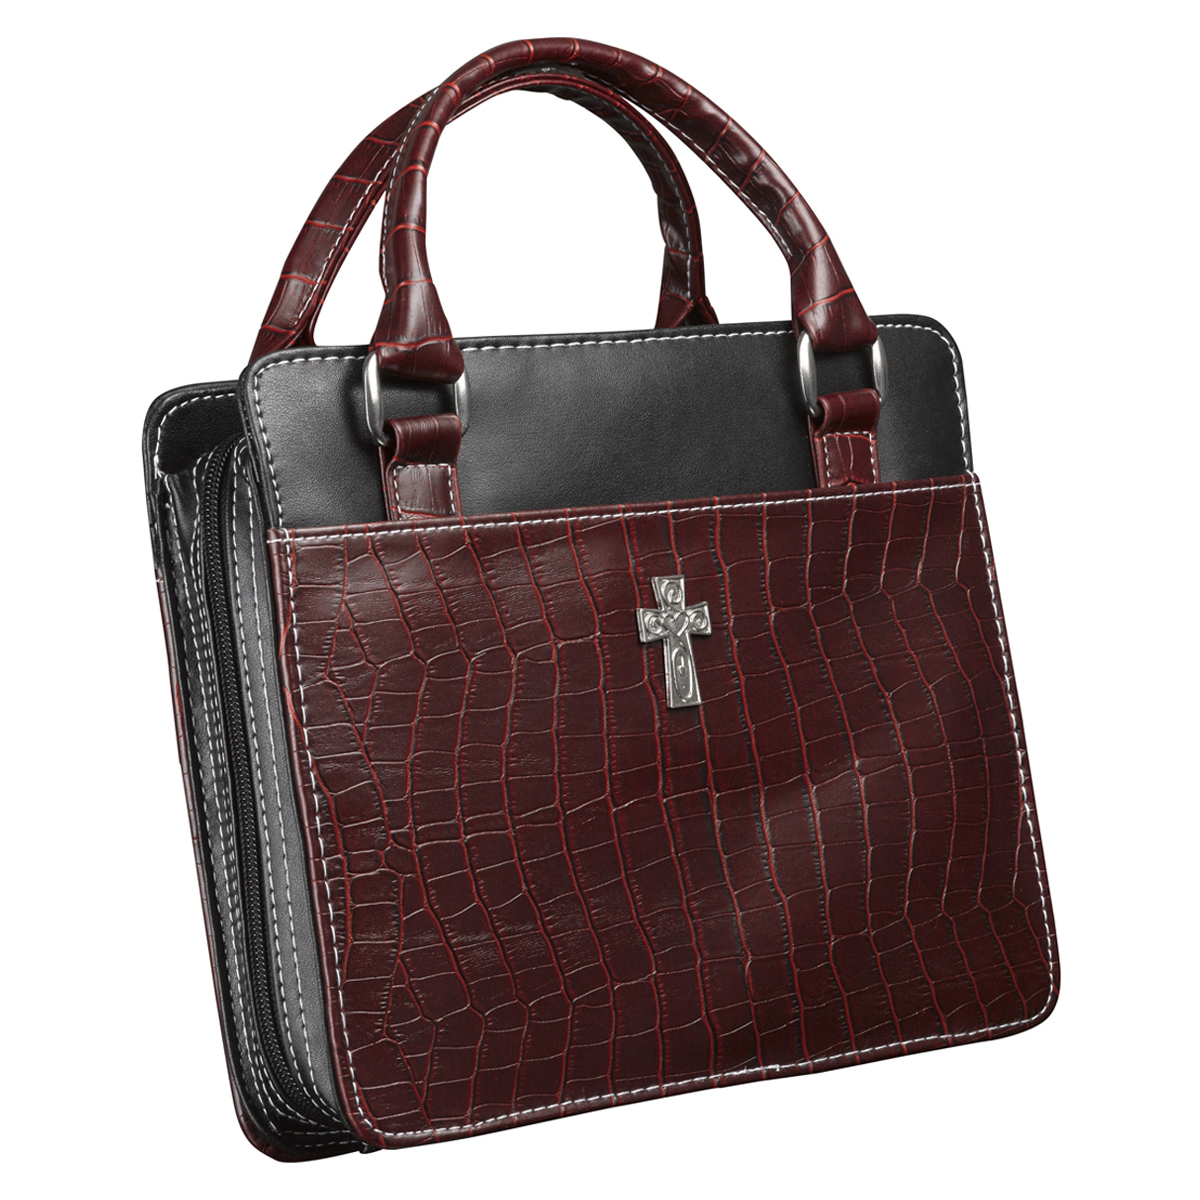 Purse-Style-with-Crocodile-Embossing-in-Burgundy-Bible-Cover-Size-Medium thumbnail 4